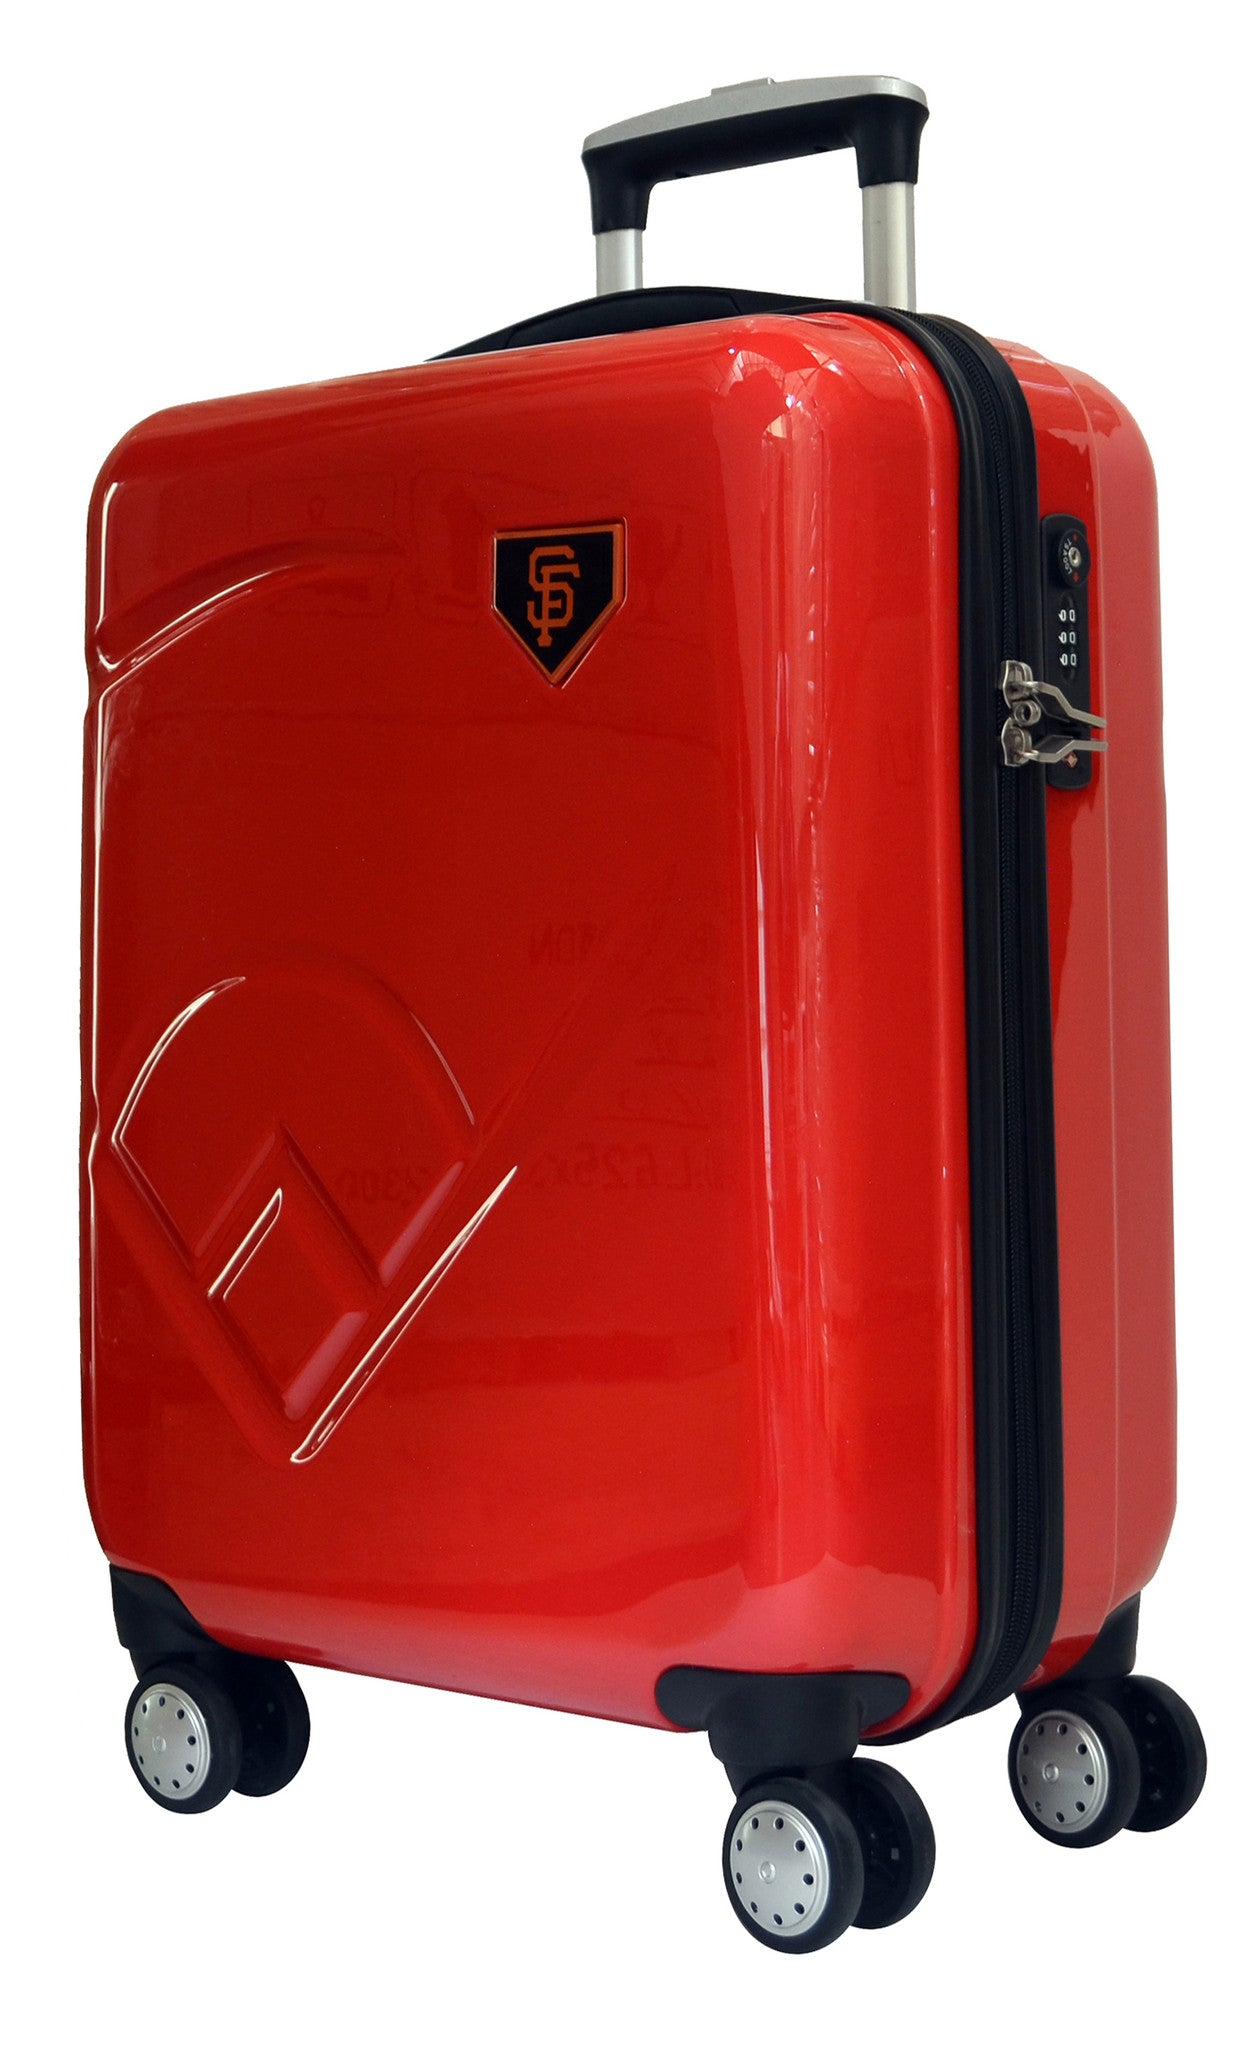 "San Francisco Giants, 19"" Premium Molded Luggage by Kaybull #SF-19PCF-IFD - OBM Distribution, Inc."